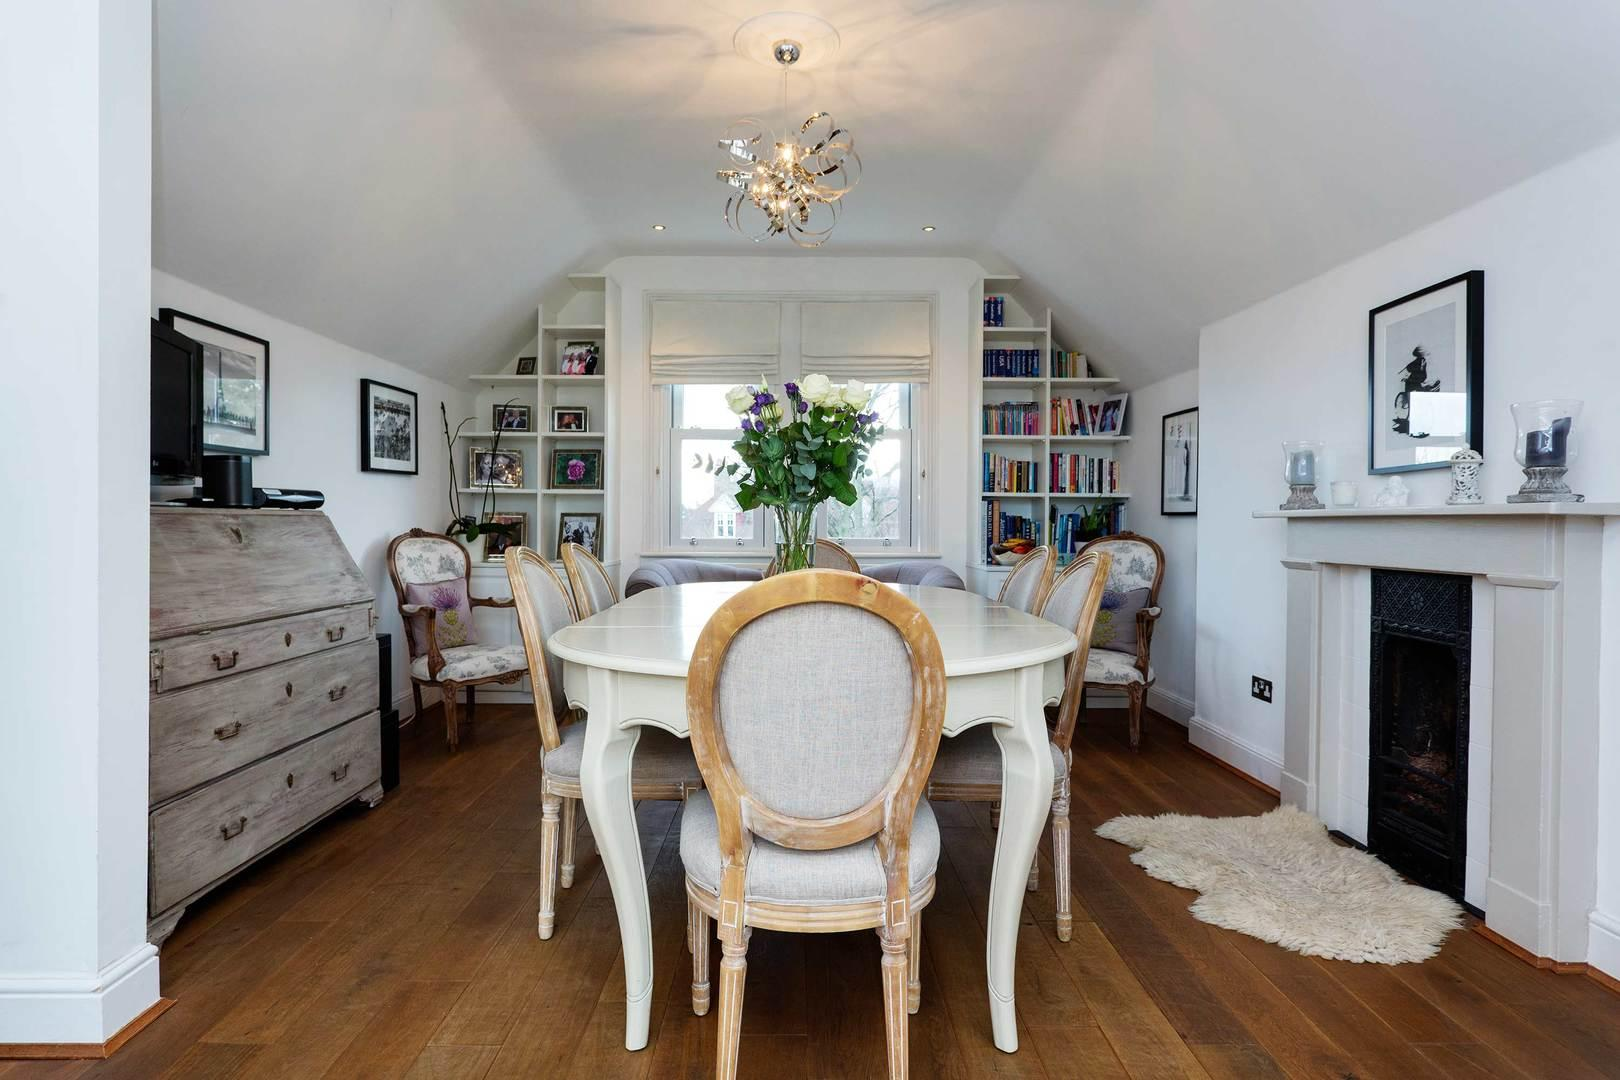 Property Image 1 - Charming Apartment in Desirable Wimbledon Location